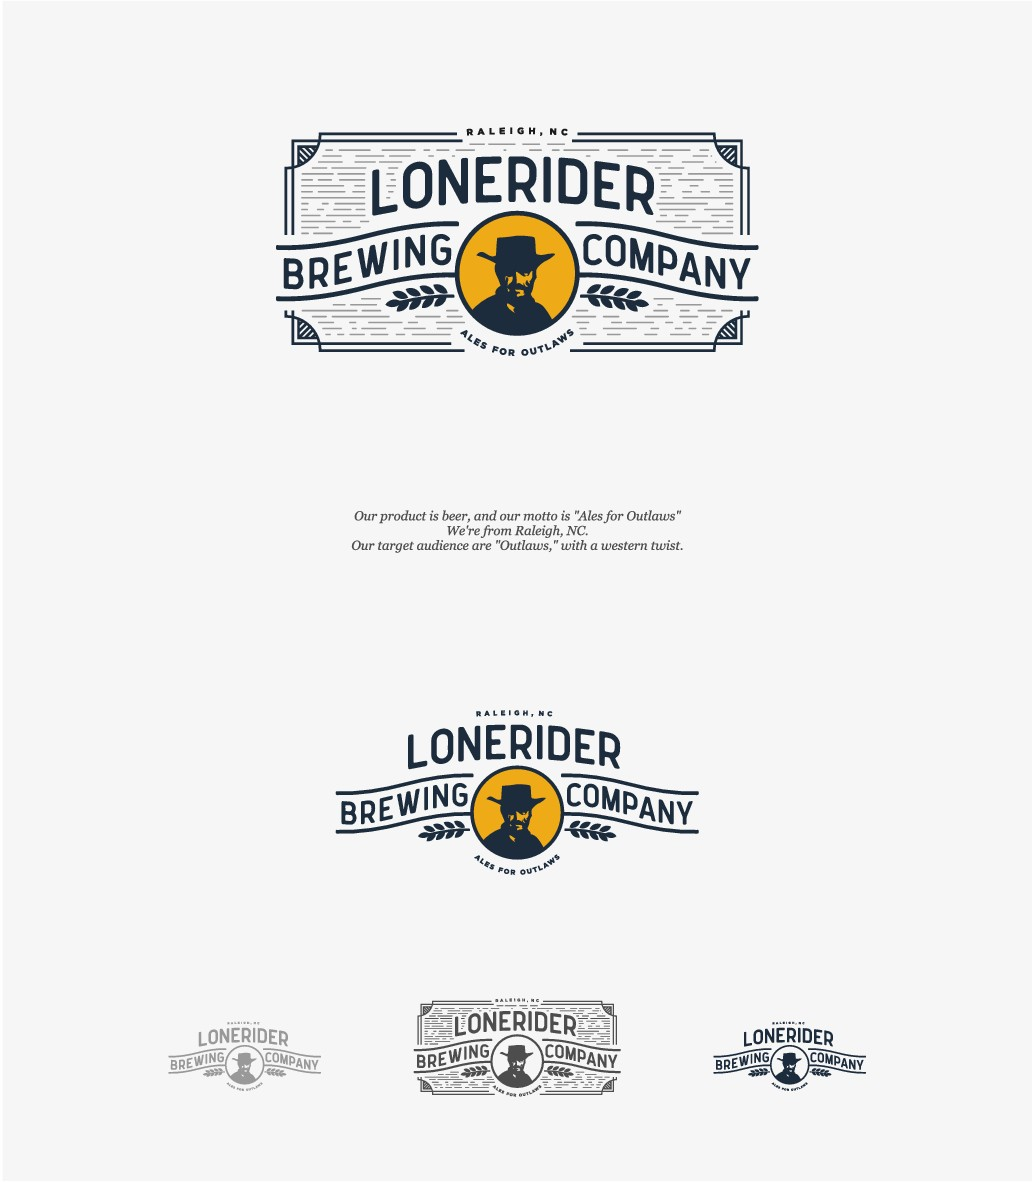 Lonerider Brewing Company Needs New Design for Outlaws